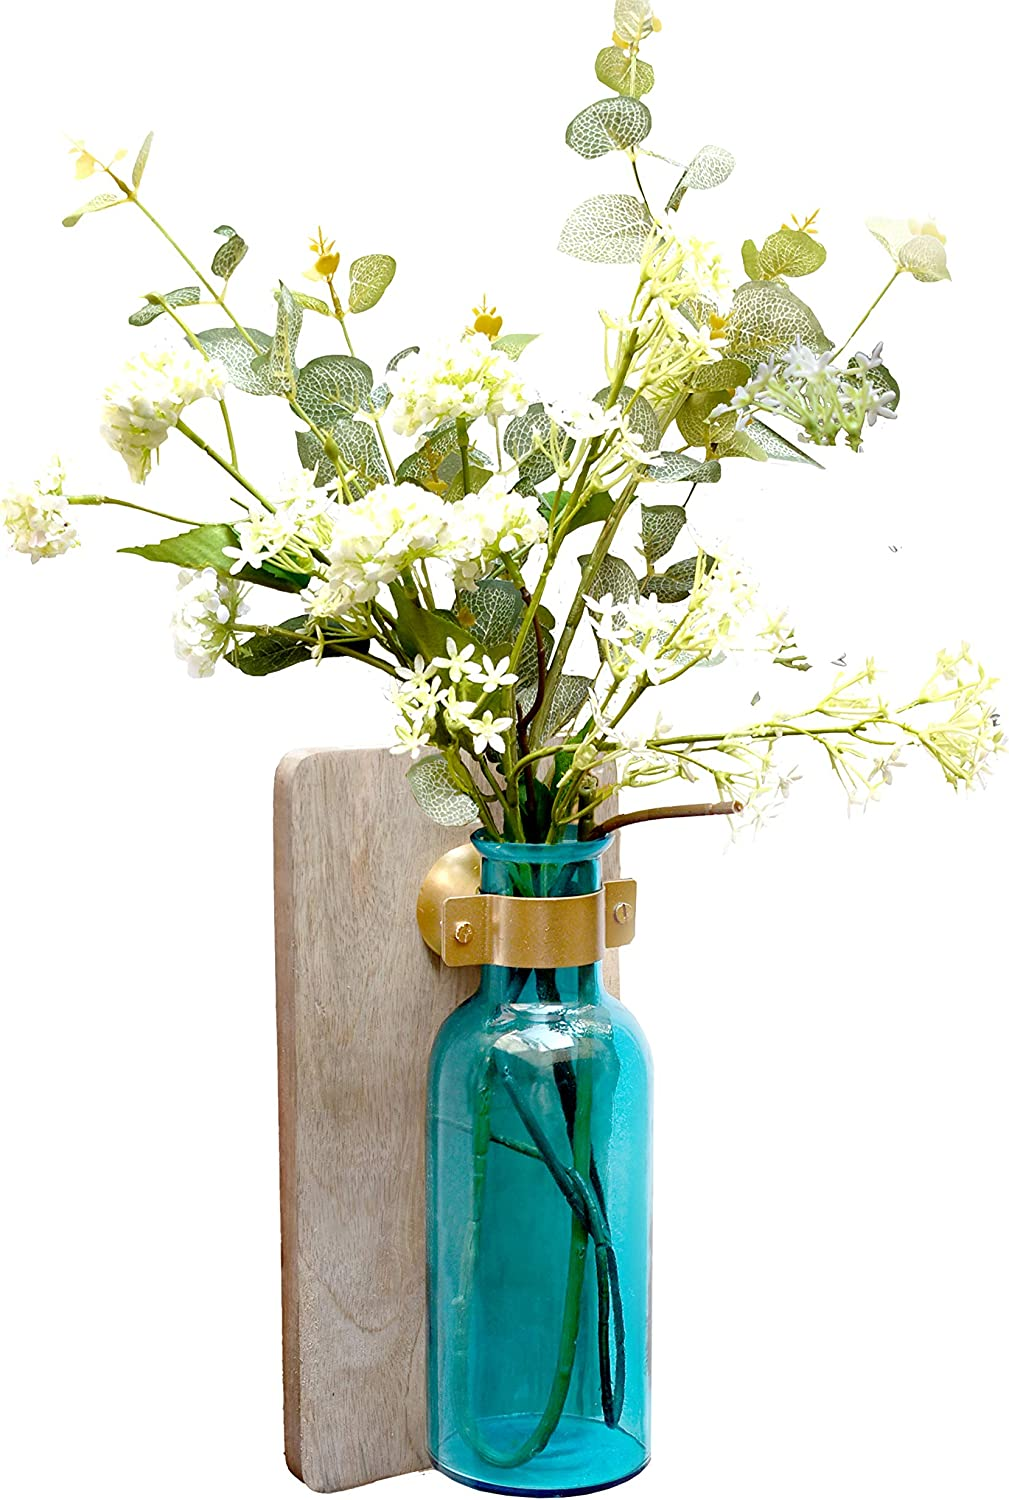 AIKYA Blue Decorative Wall Flower Sconce – Rustic Floral Hanging Vase Decor – Ideal Contemporary Wall Decor for Home, Office, Farmhouse or as a Housewarming Gift – Flower not Included ,